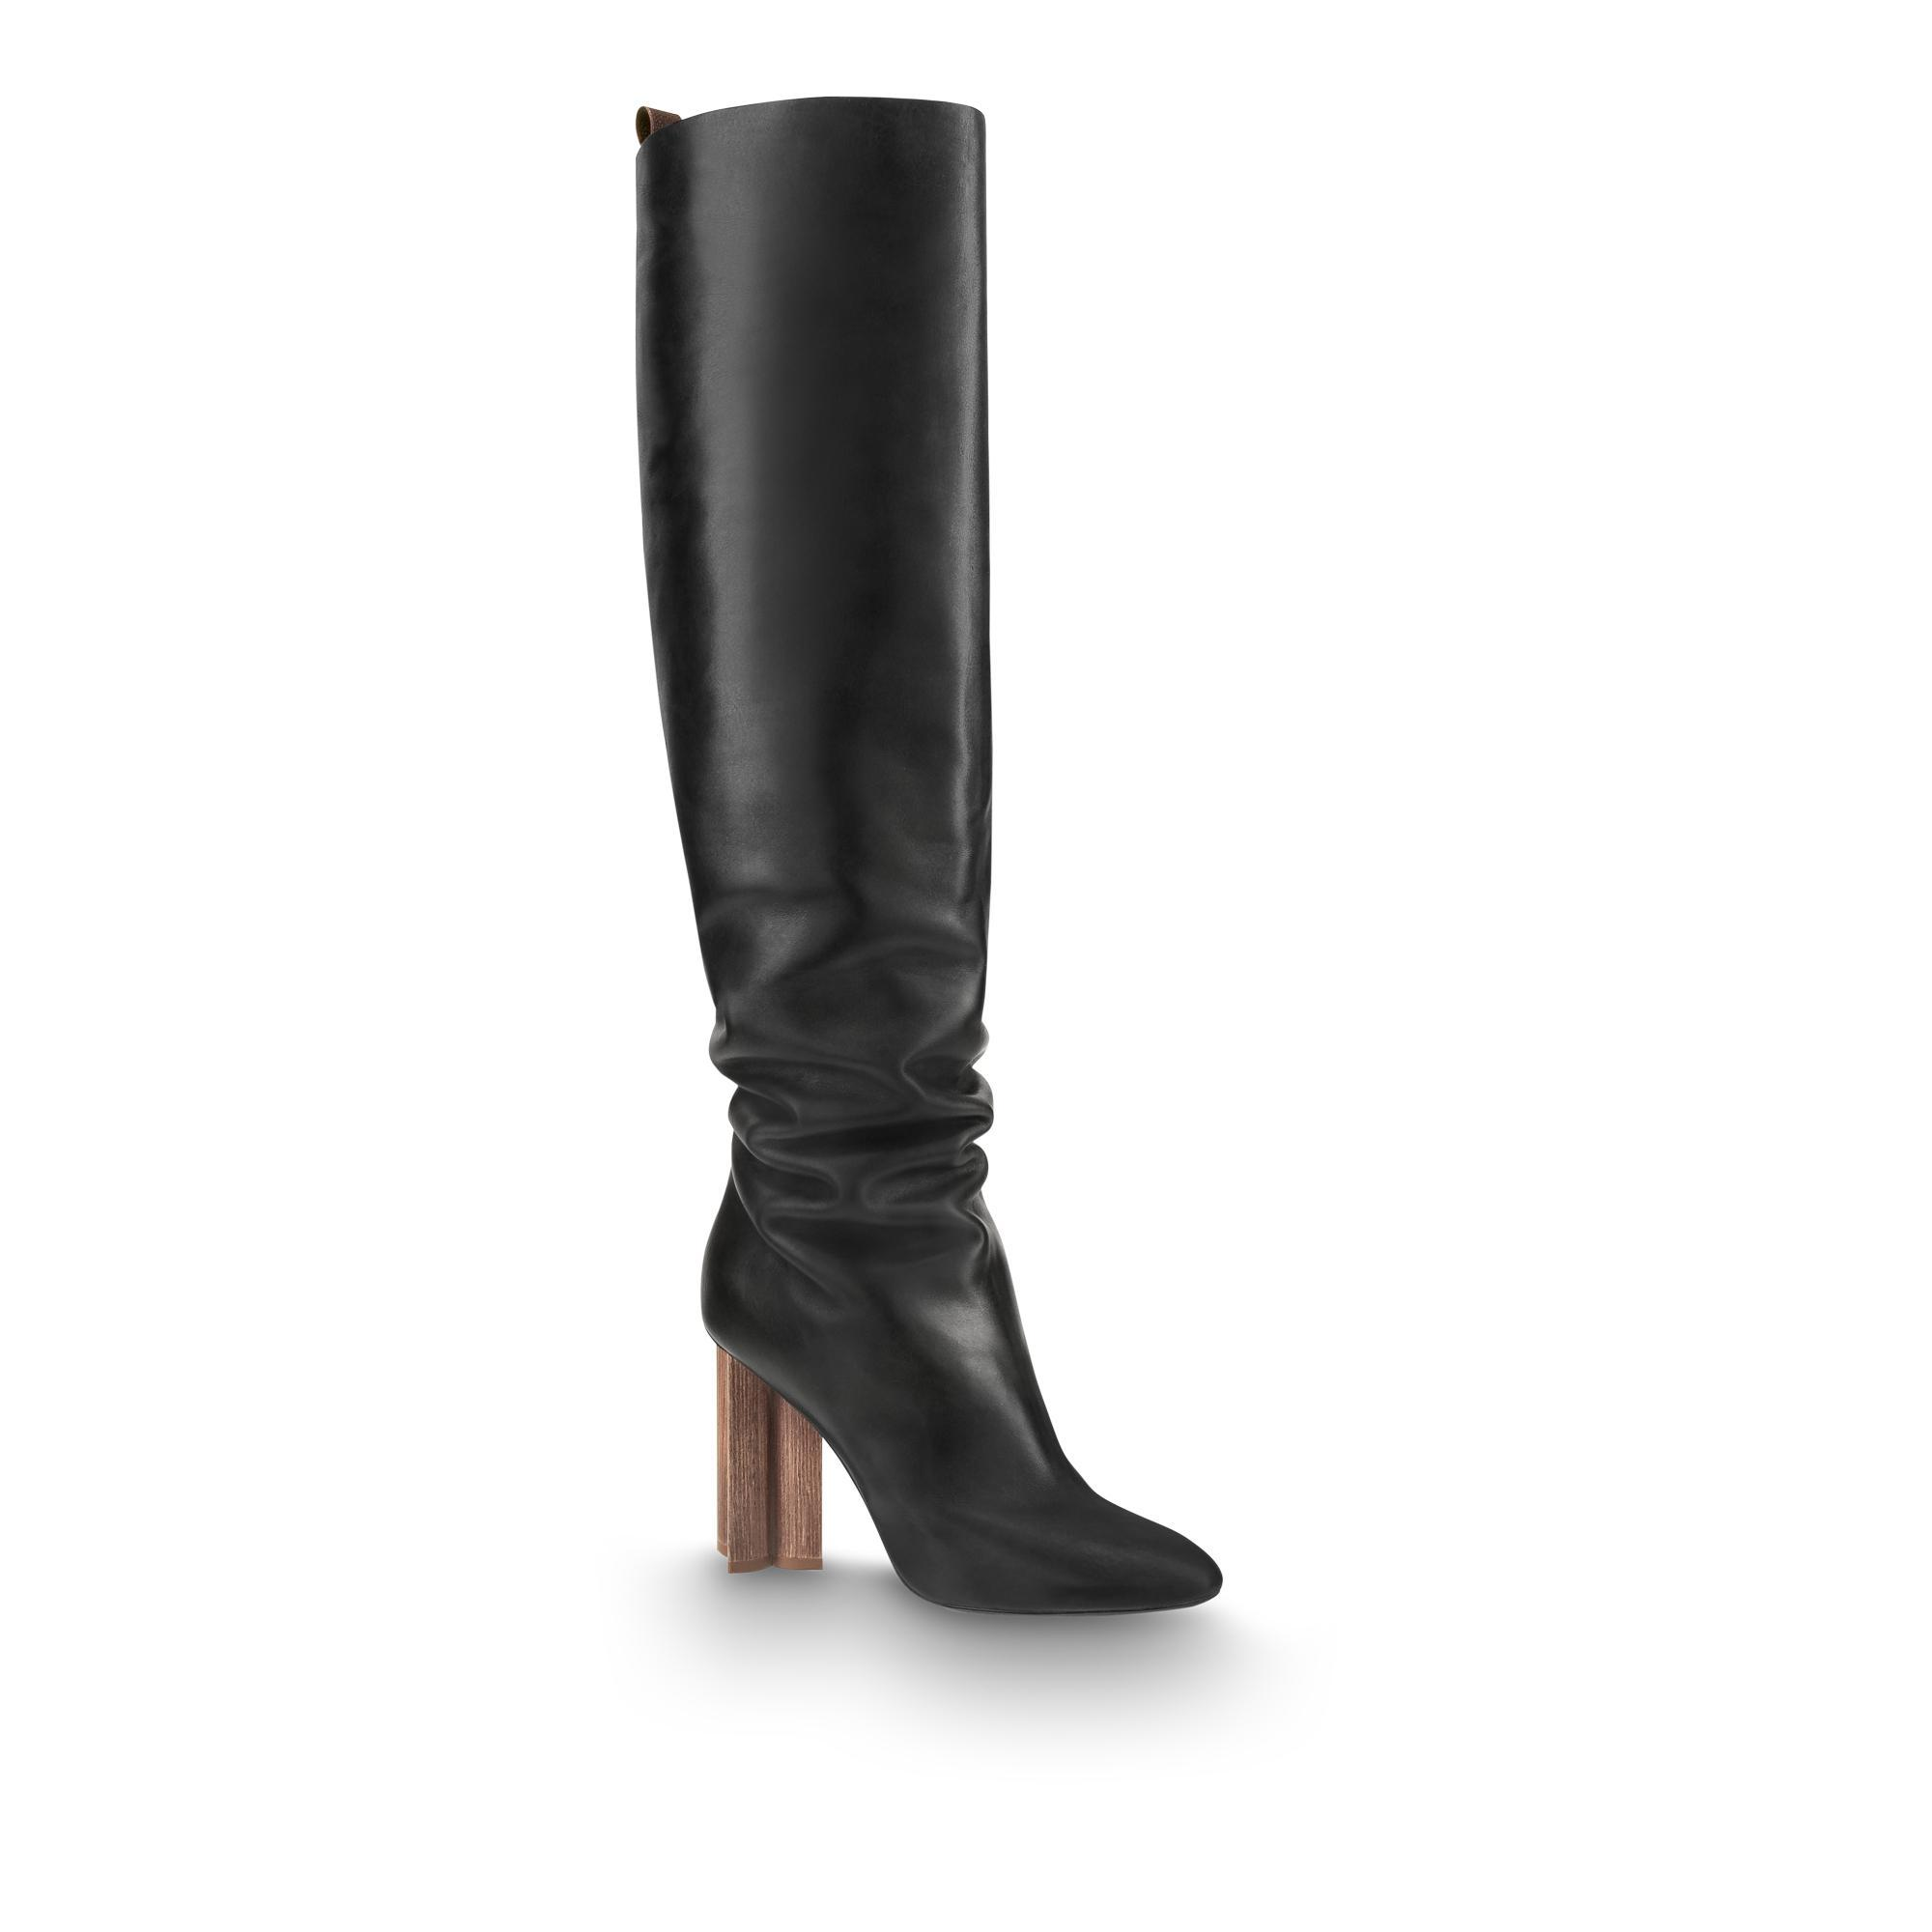 Silhouette High Boot in Noir from LOUIS VUITTON